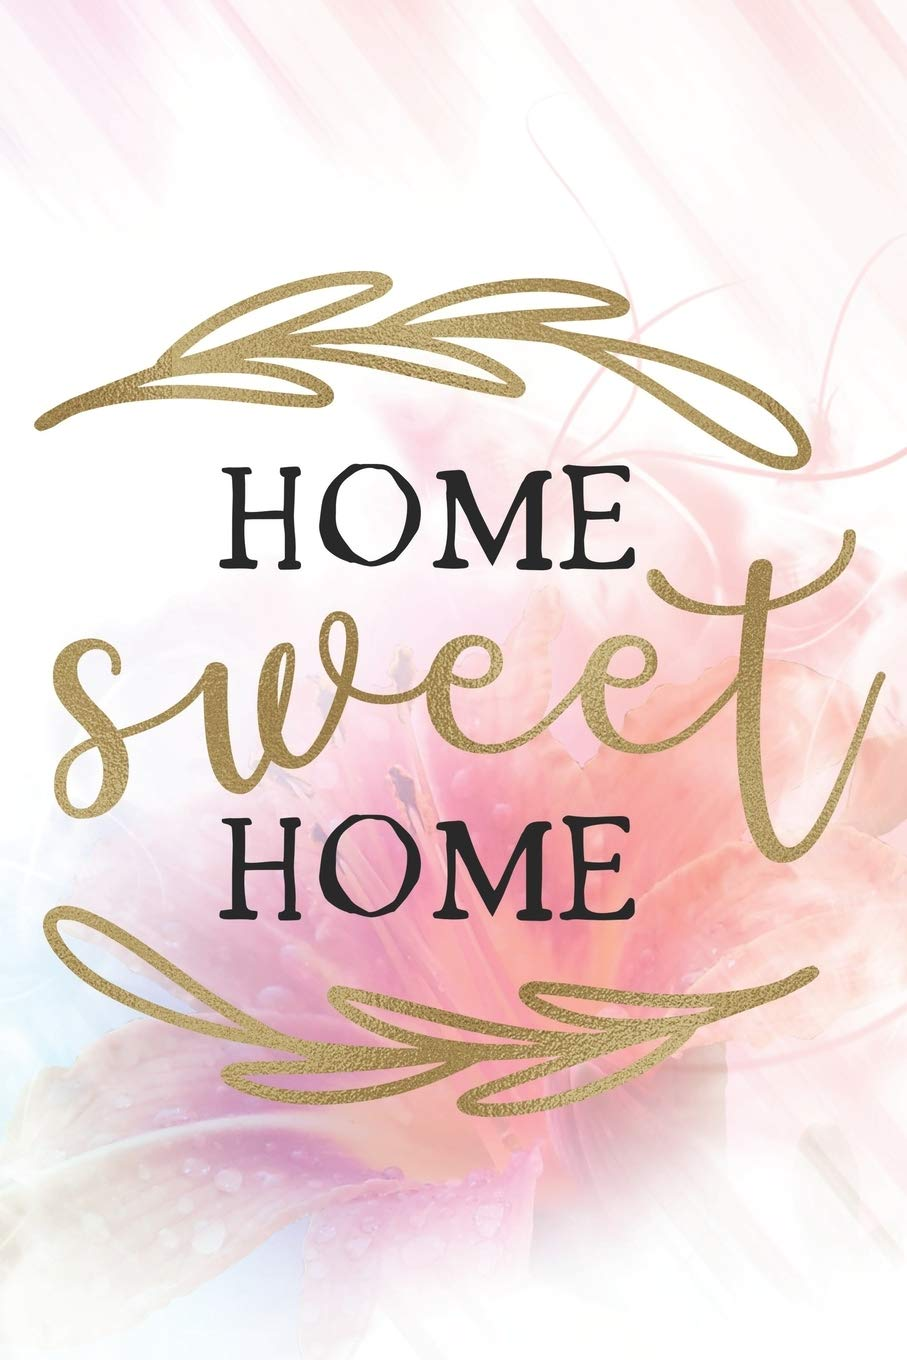 Home Sweet Home Cute House And Home Design Notebook Journal Diary To Write In White Background Family And Relationships Press Robimo 9781688986077 Amazon Com Books